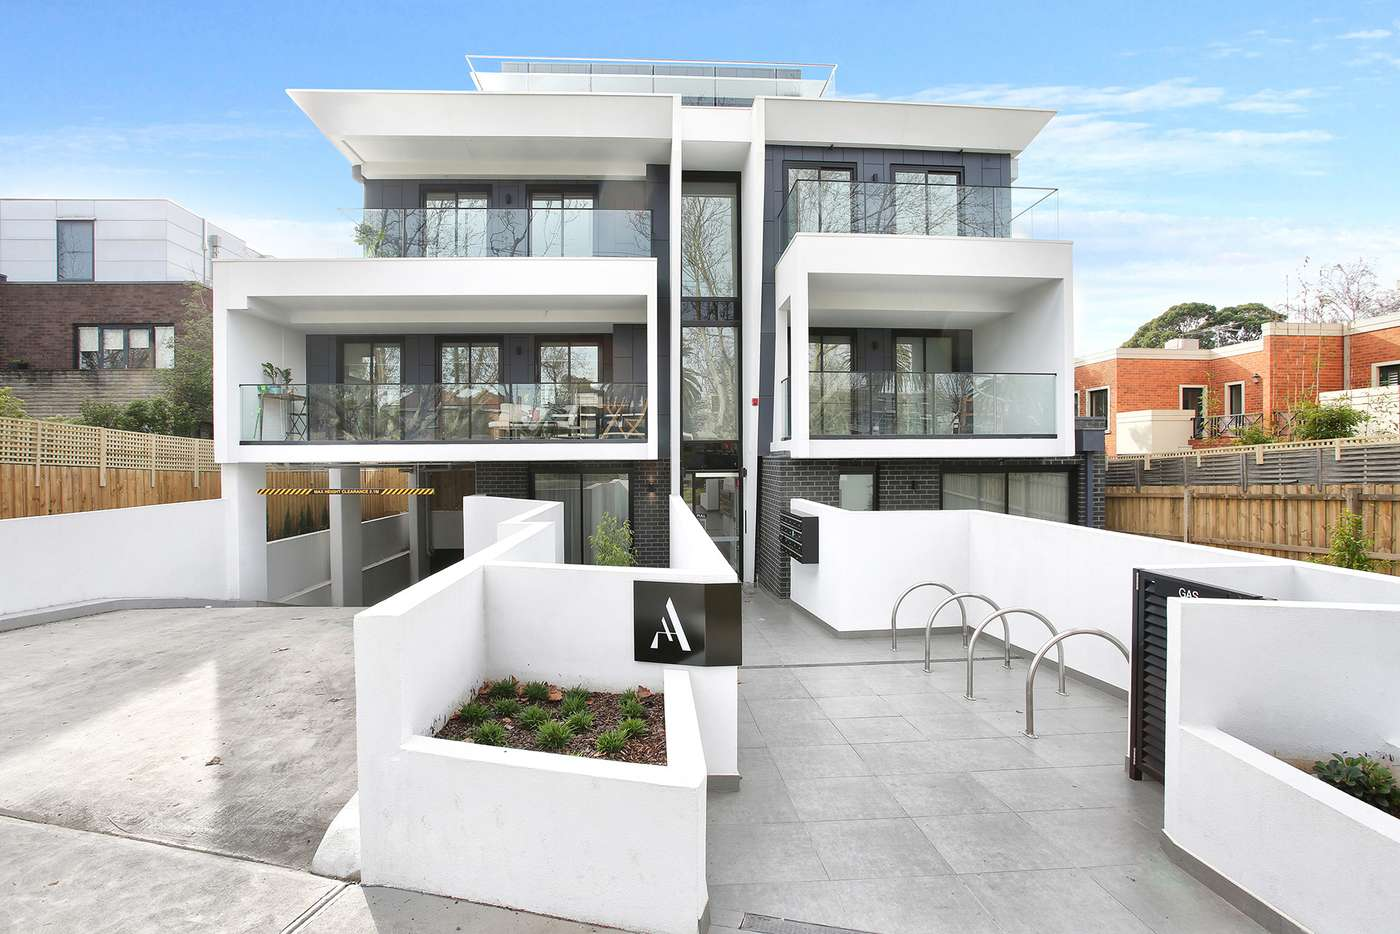 Main view of Homely apartment listing, 2/511 Dandenong Road, Armadale VIC 3143